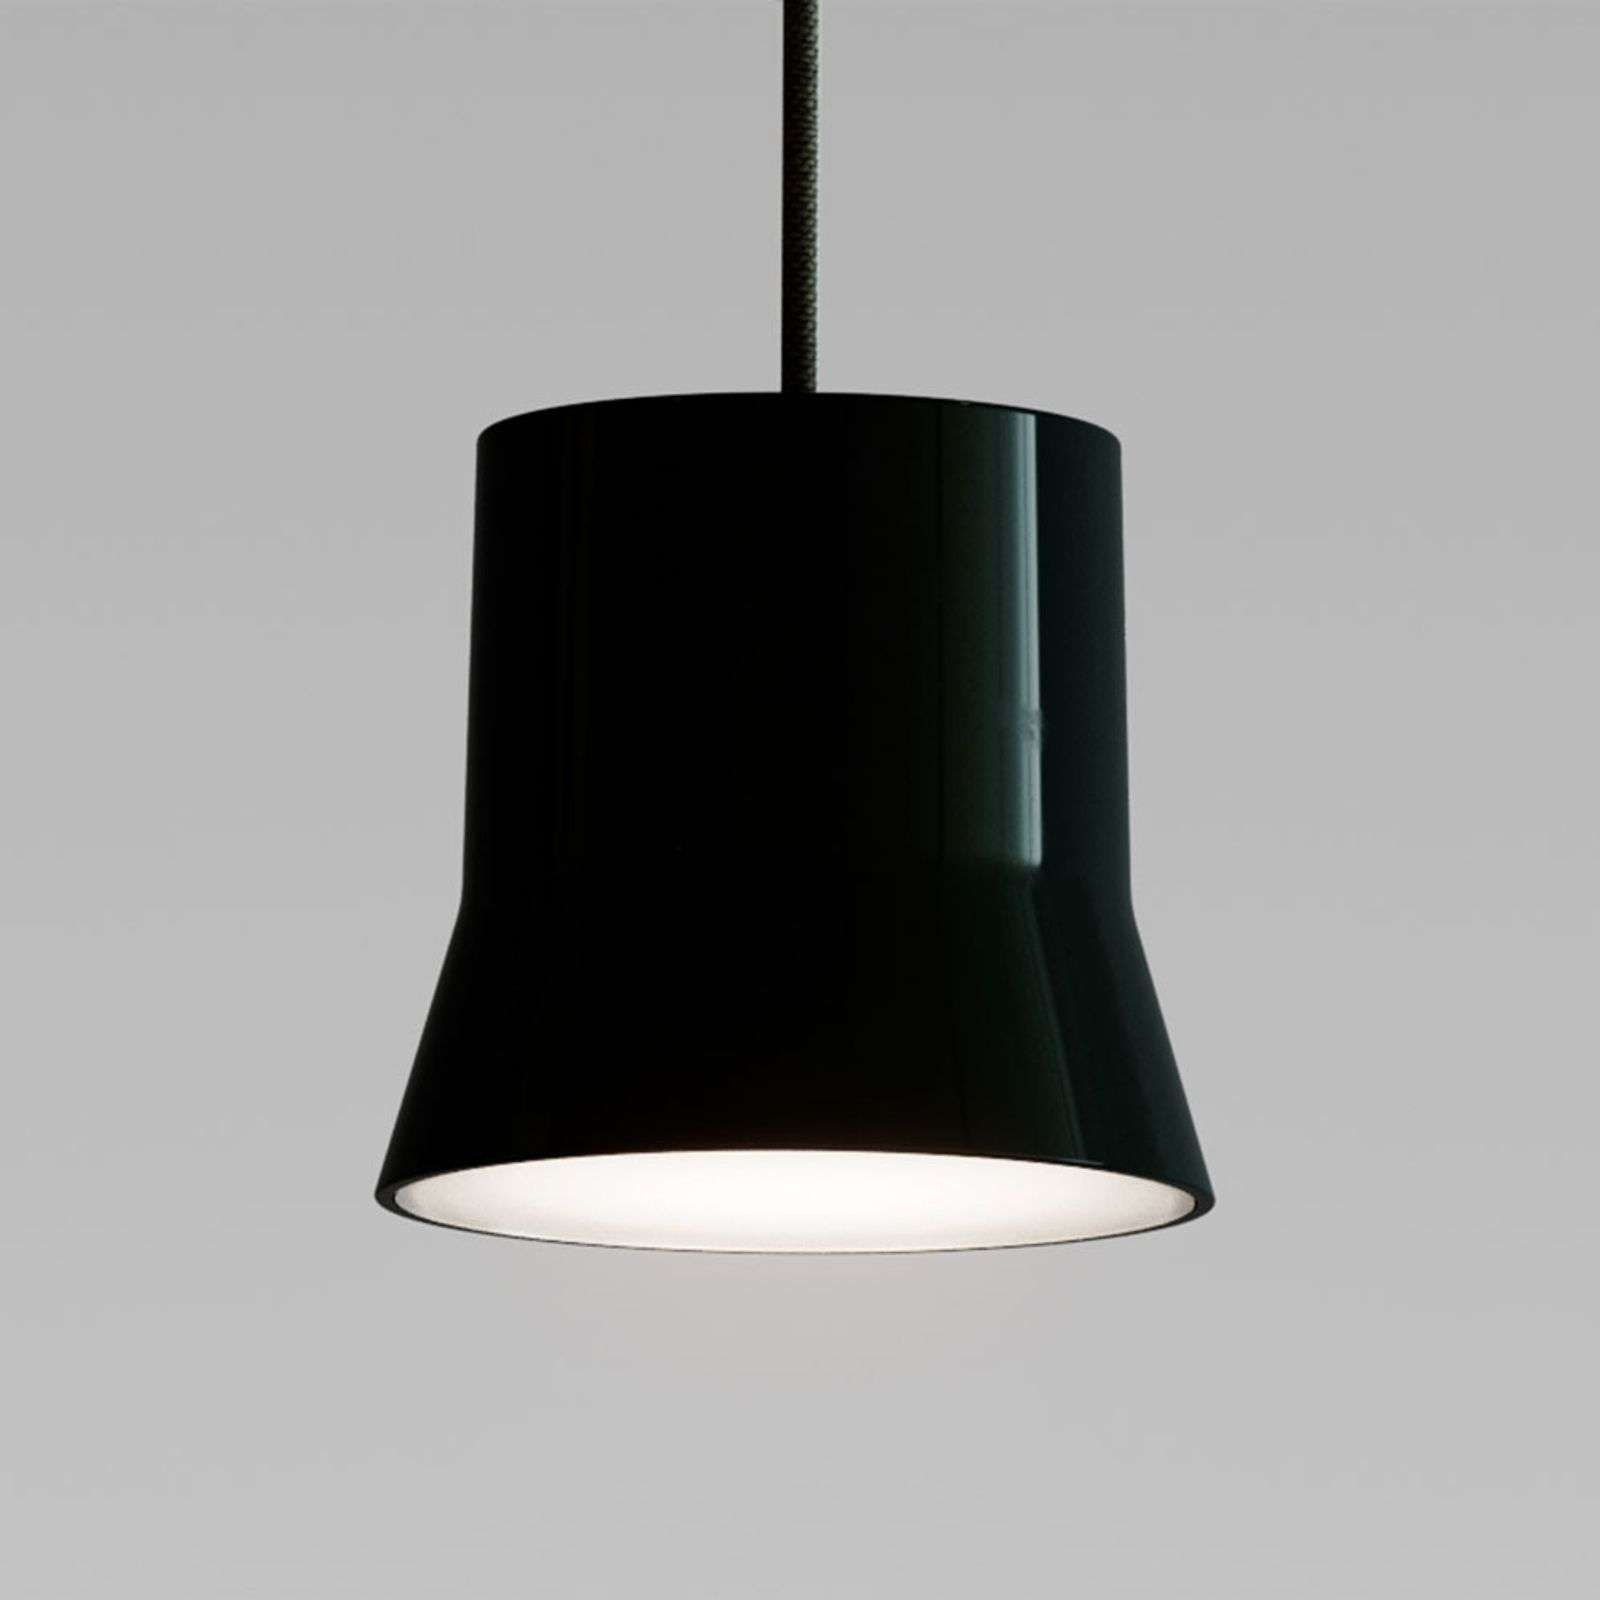 Artemide GIO.light LED a sospensione, nero